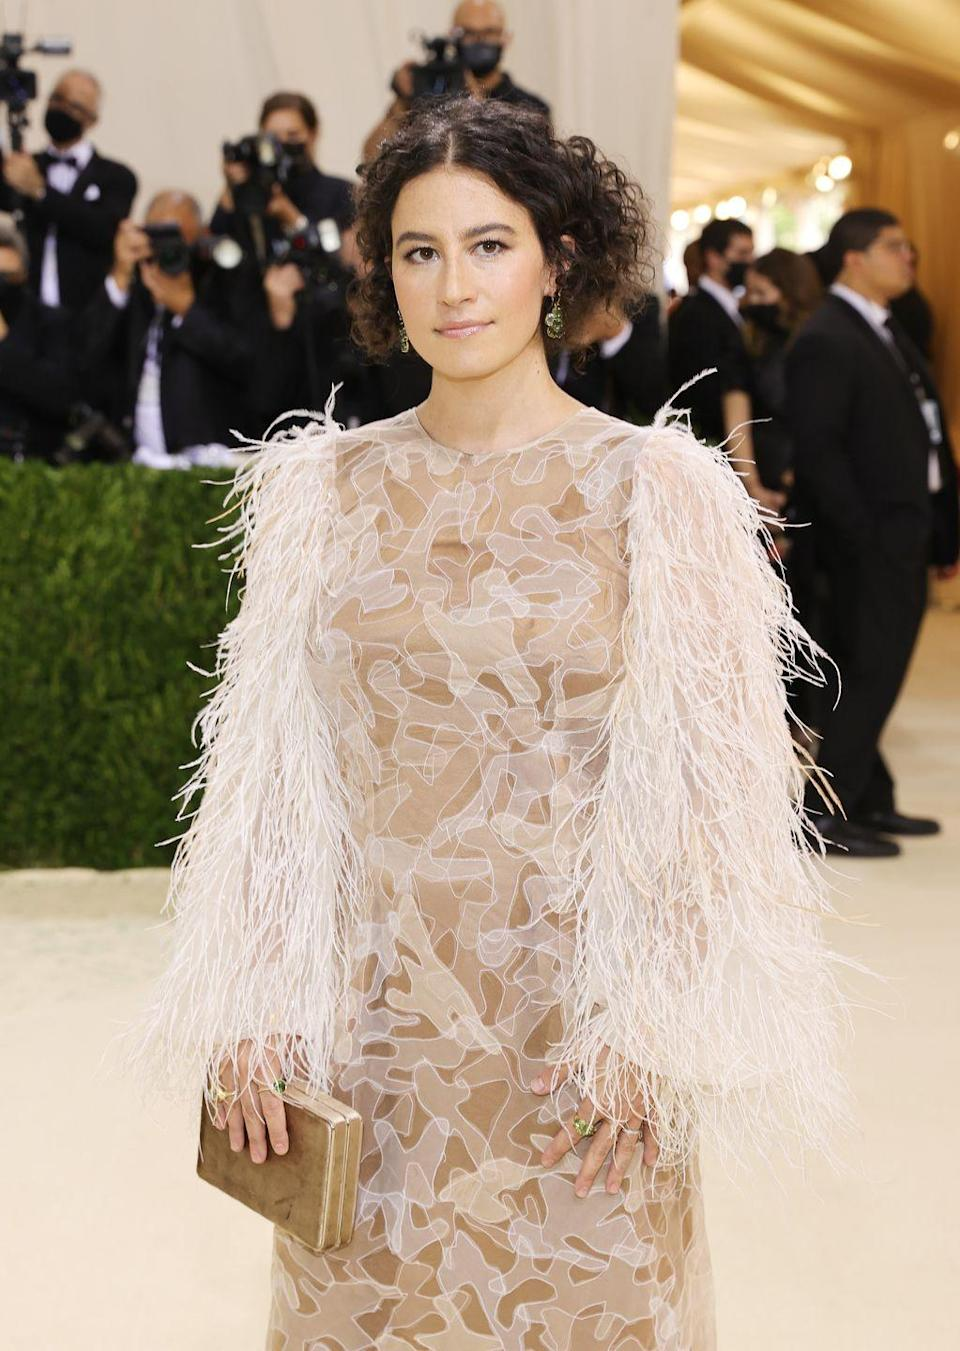 <p>From stoner queen in Broad City to party girl in Rough Night, Ilana Glazer curbed both roles by going real grown up and real glam as one of the night's co-hosts.</p>